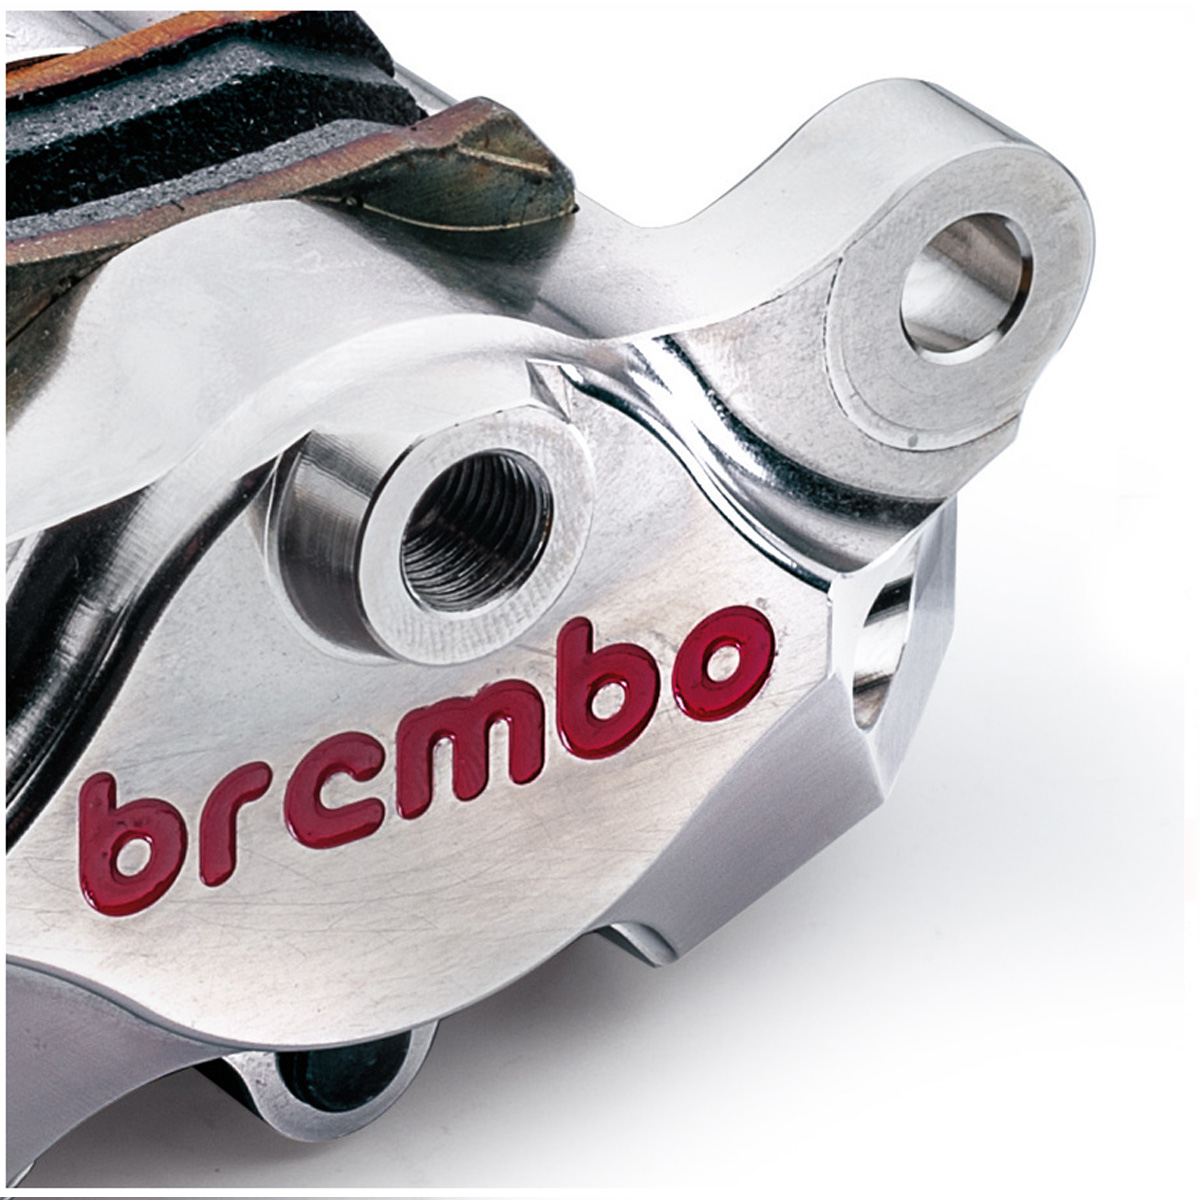 120A44140 Calipers Rear Break Brembo Racing P2 34 Cnc SS With Pad Ducati Aprilia Nickel